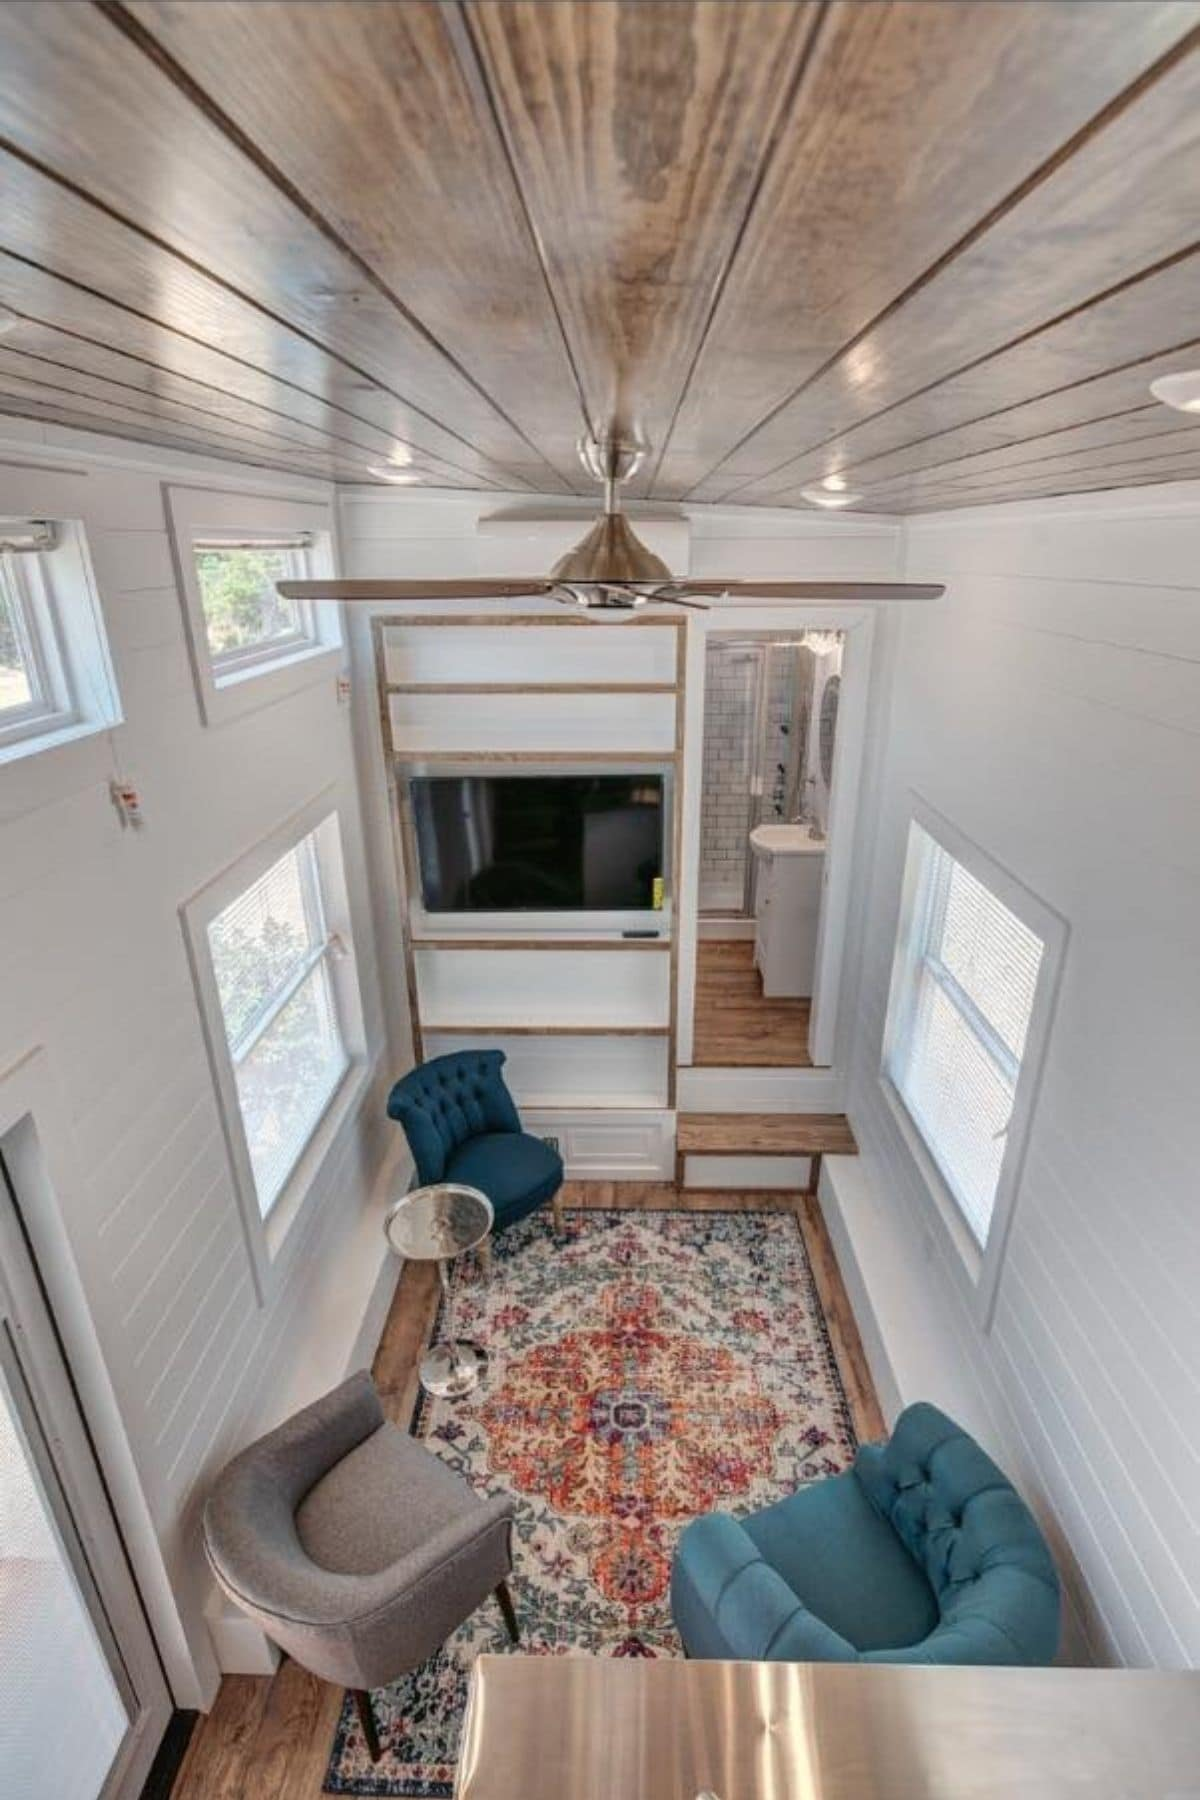 View from loft into main tiny home floor showcaseing white walls